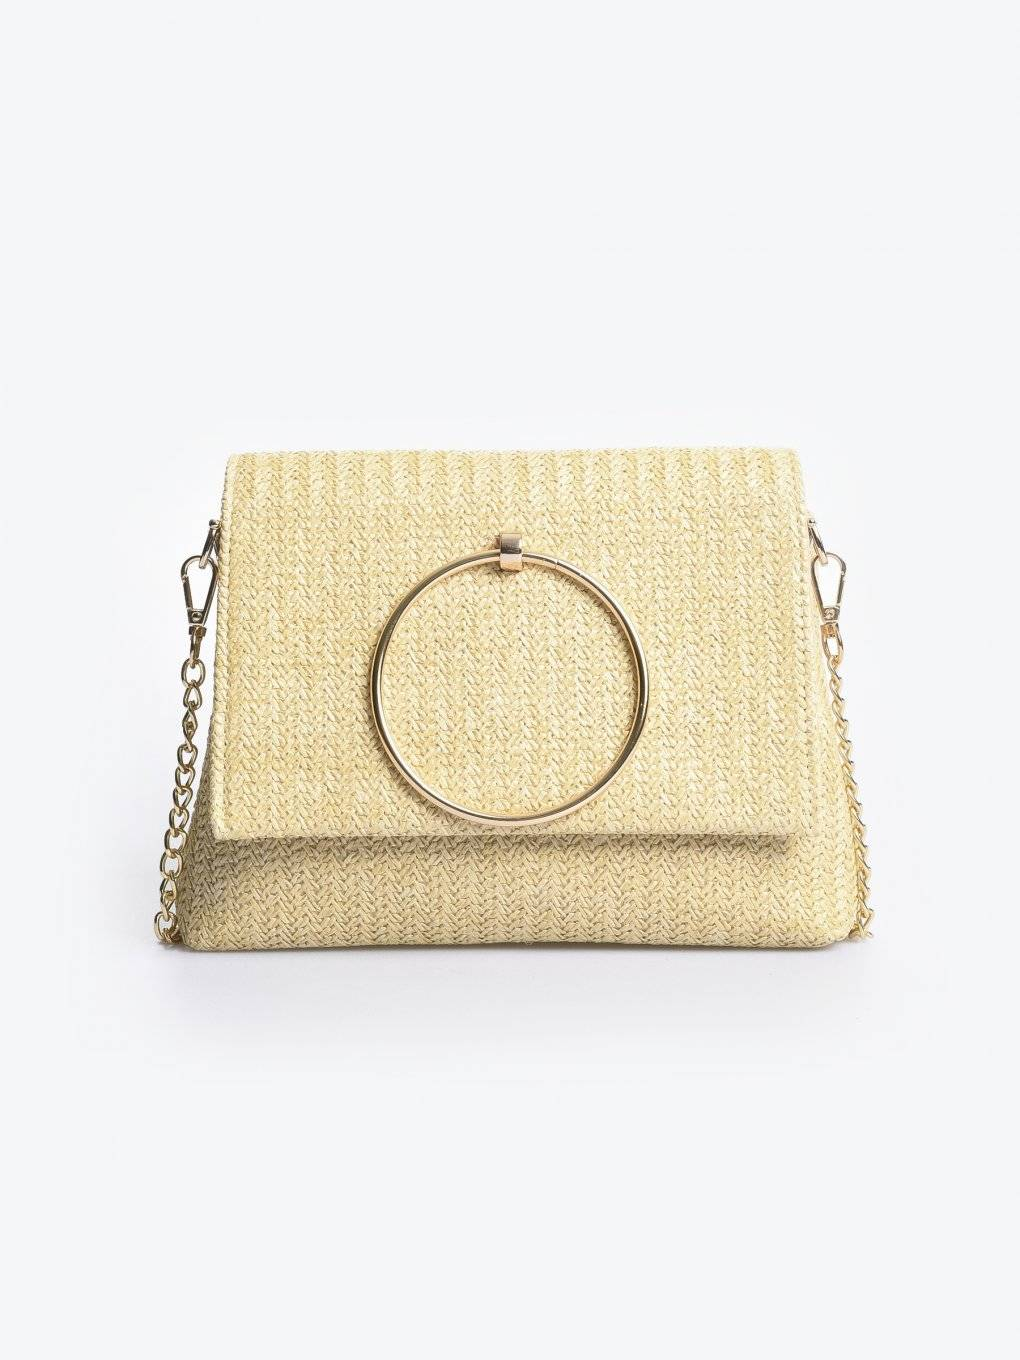 Bag with ring handles